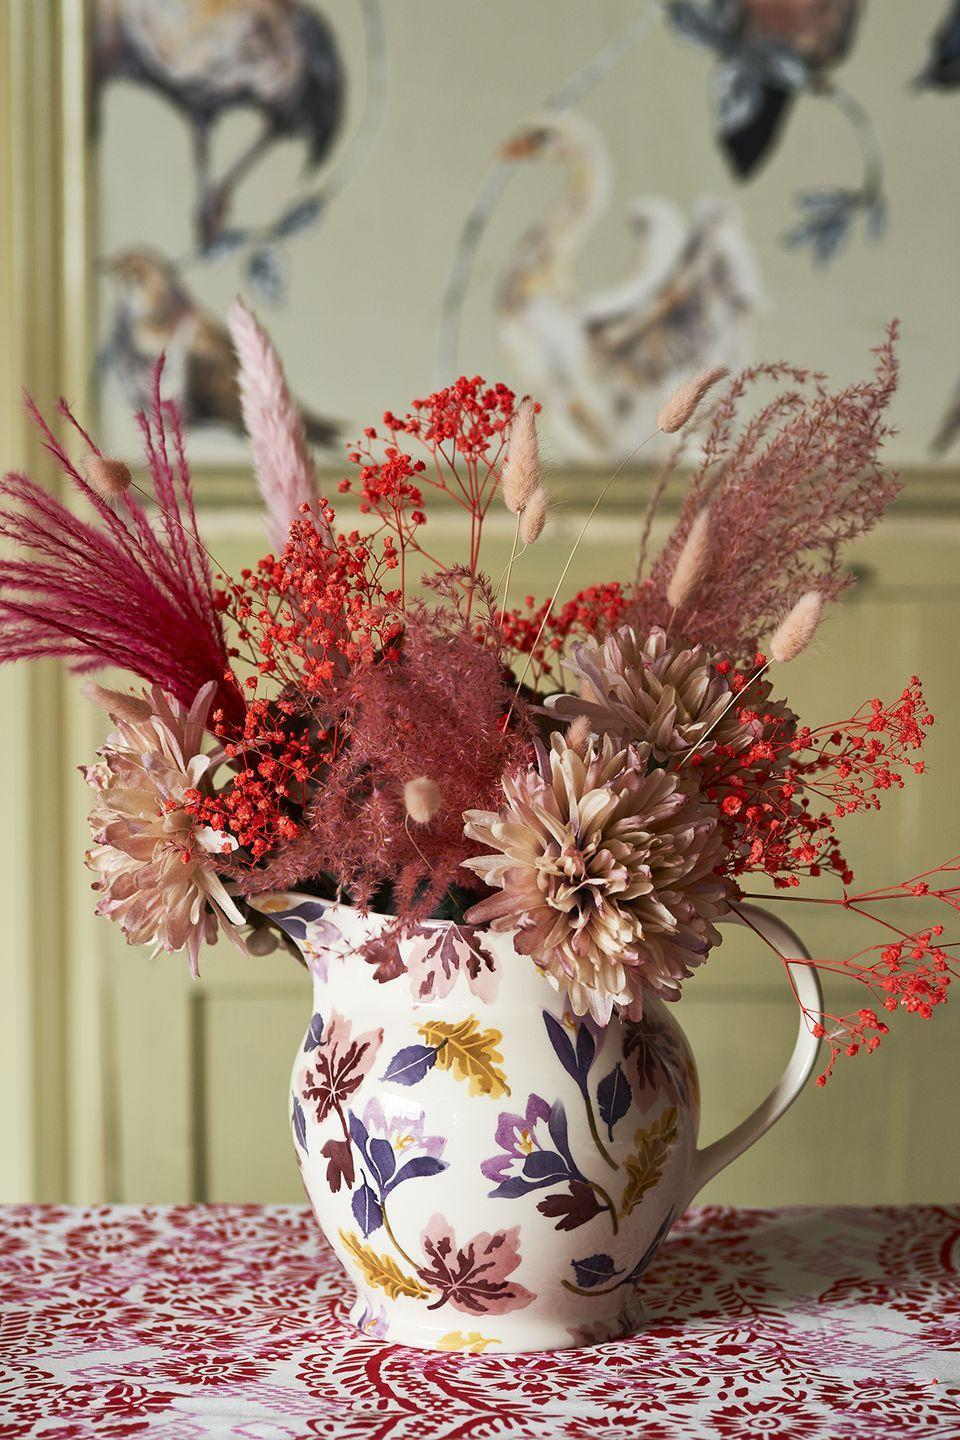 """<p>Show off your favourite autumnal <a href=""""https://www.housebeautiful.com/uk/garden/plants/a36874506/grow-your-own-wedding-flowers/"""" rel=""""nofollow noopener"""" target=""""_blank"""" data-ylk=""""slk:blooms"""" class=""""link rapid-noclick-resp"""">blooms</a> with this pretty jug from the Crocus range. Adorned with hues of rustic red, dark purple and mustard yellow, it's just what every kitchen table needs this autumn.</p><p><a class=""""link rapid-noclick-resp"""" href=""""https://go.redirectingat.com?id=127X1599956&url=https%3A%2F%2Fwww.emmabridgewater.co.uk%2Fproducts%2Fautumn-crocus-1-1-2-pint-jug&sref=https%3A%2F%2Fwww.housebeautiful.com%2Fuk%2Flifestyle%2Fshopping%2Fg37527696%2Femma-bridgewater-autumn-range%2F"""" rel=""""nofollow noopener"""" target=""""_blank"""" data-ylk=""""slk:BUY NOW, £34.95"""">BUY NOW, £34.95</a></p>"""